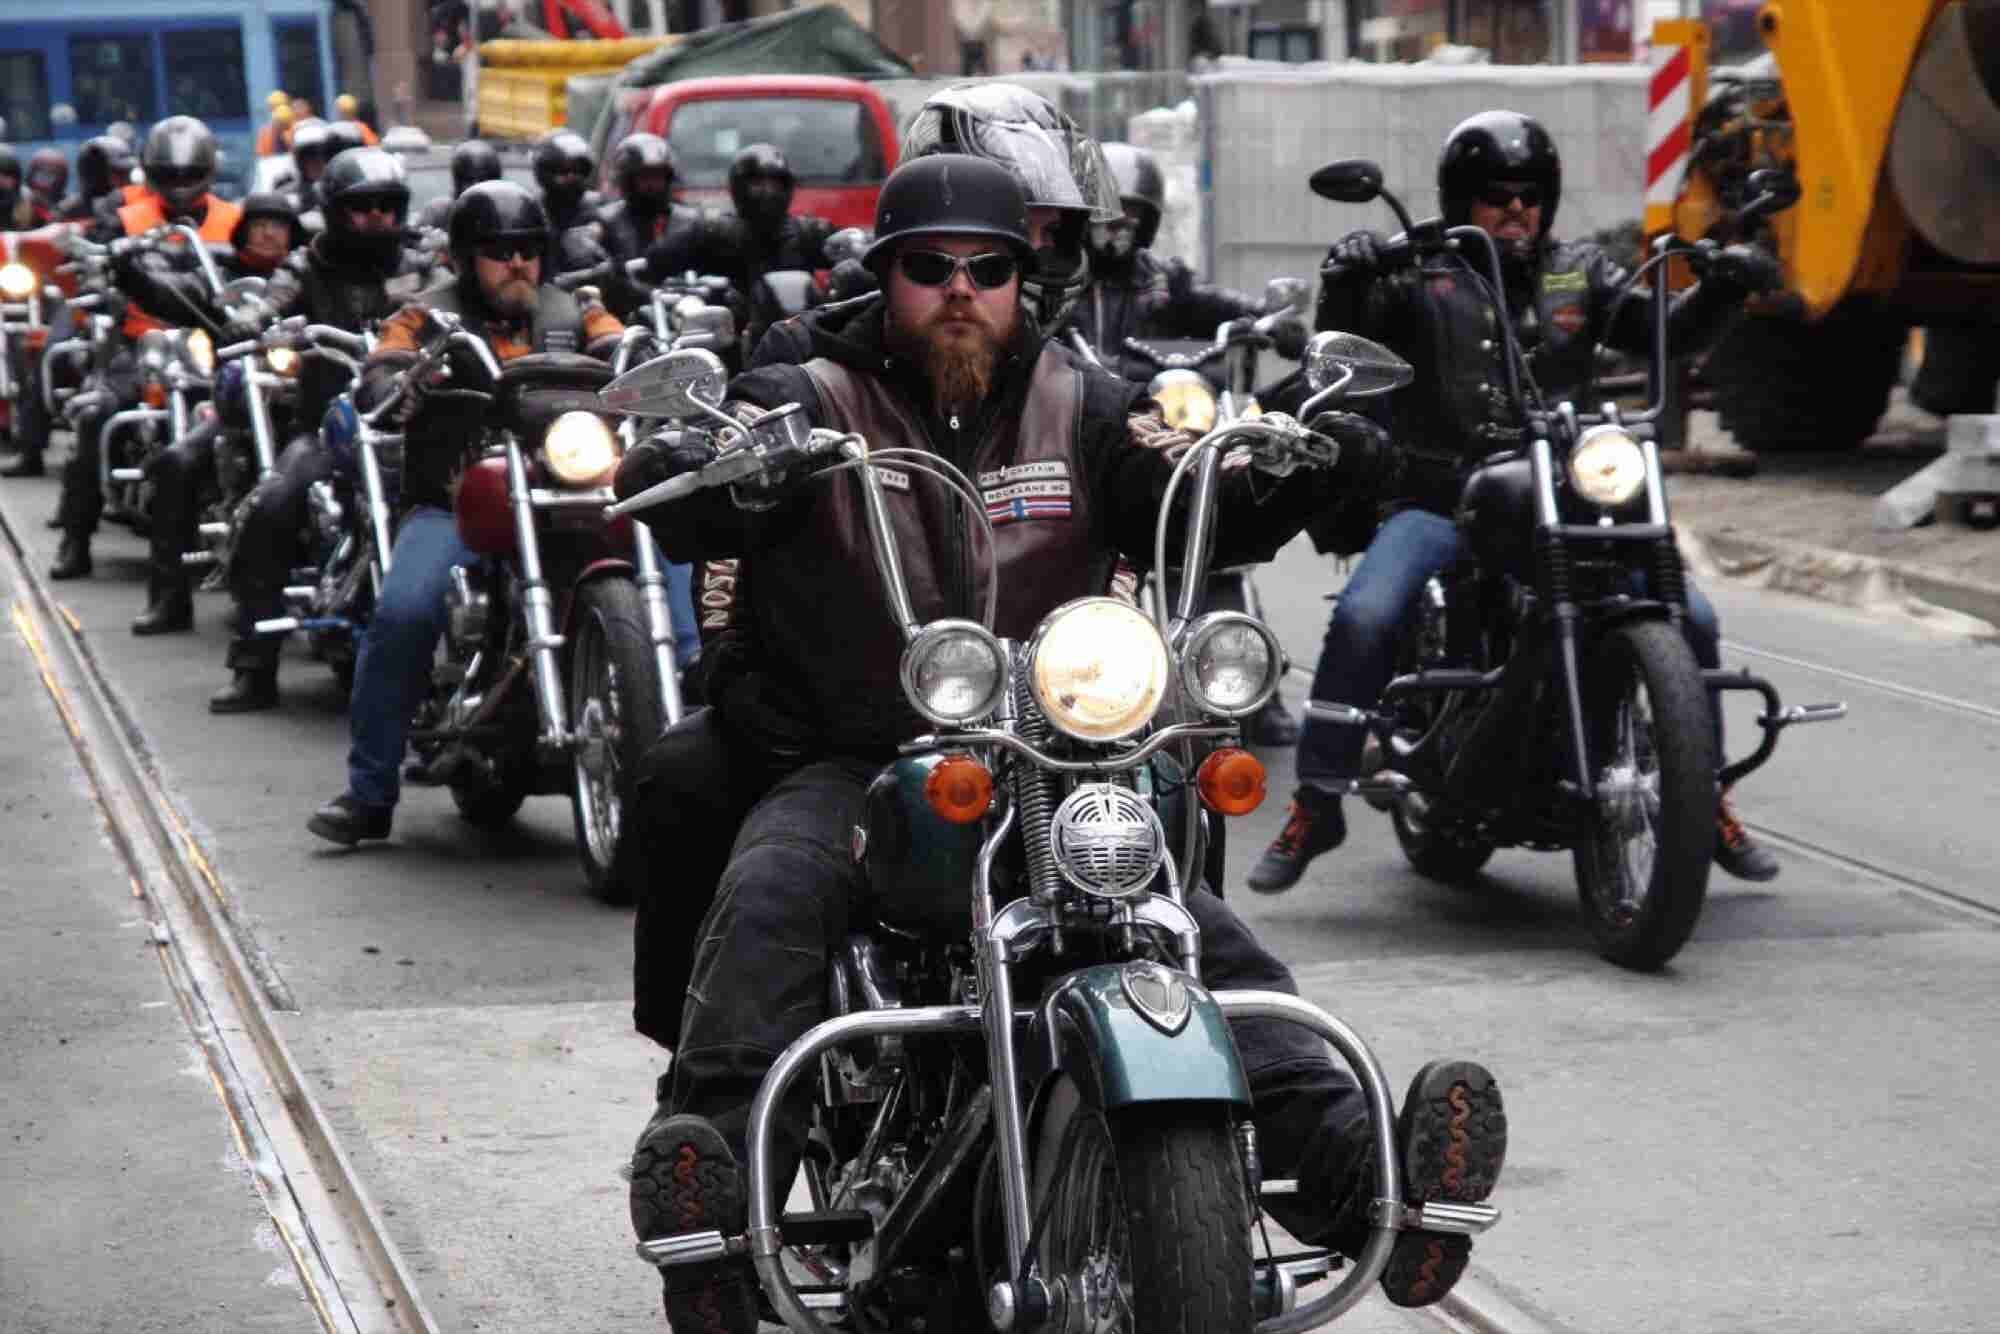 5 Business Lessons I Learned From Being a Member of a Motorcycle Gang